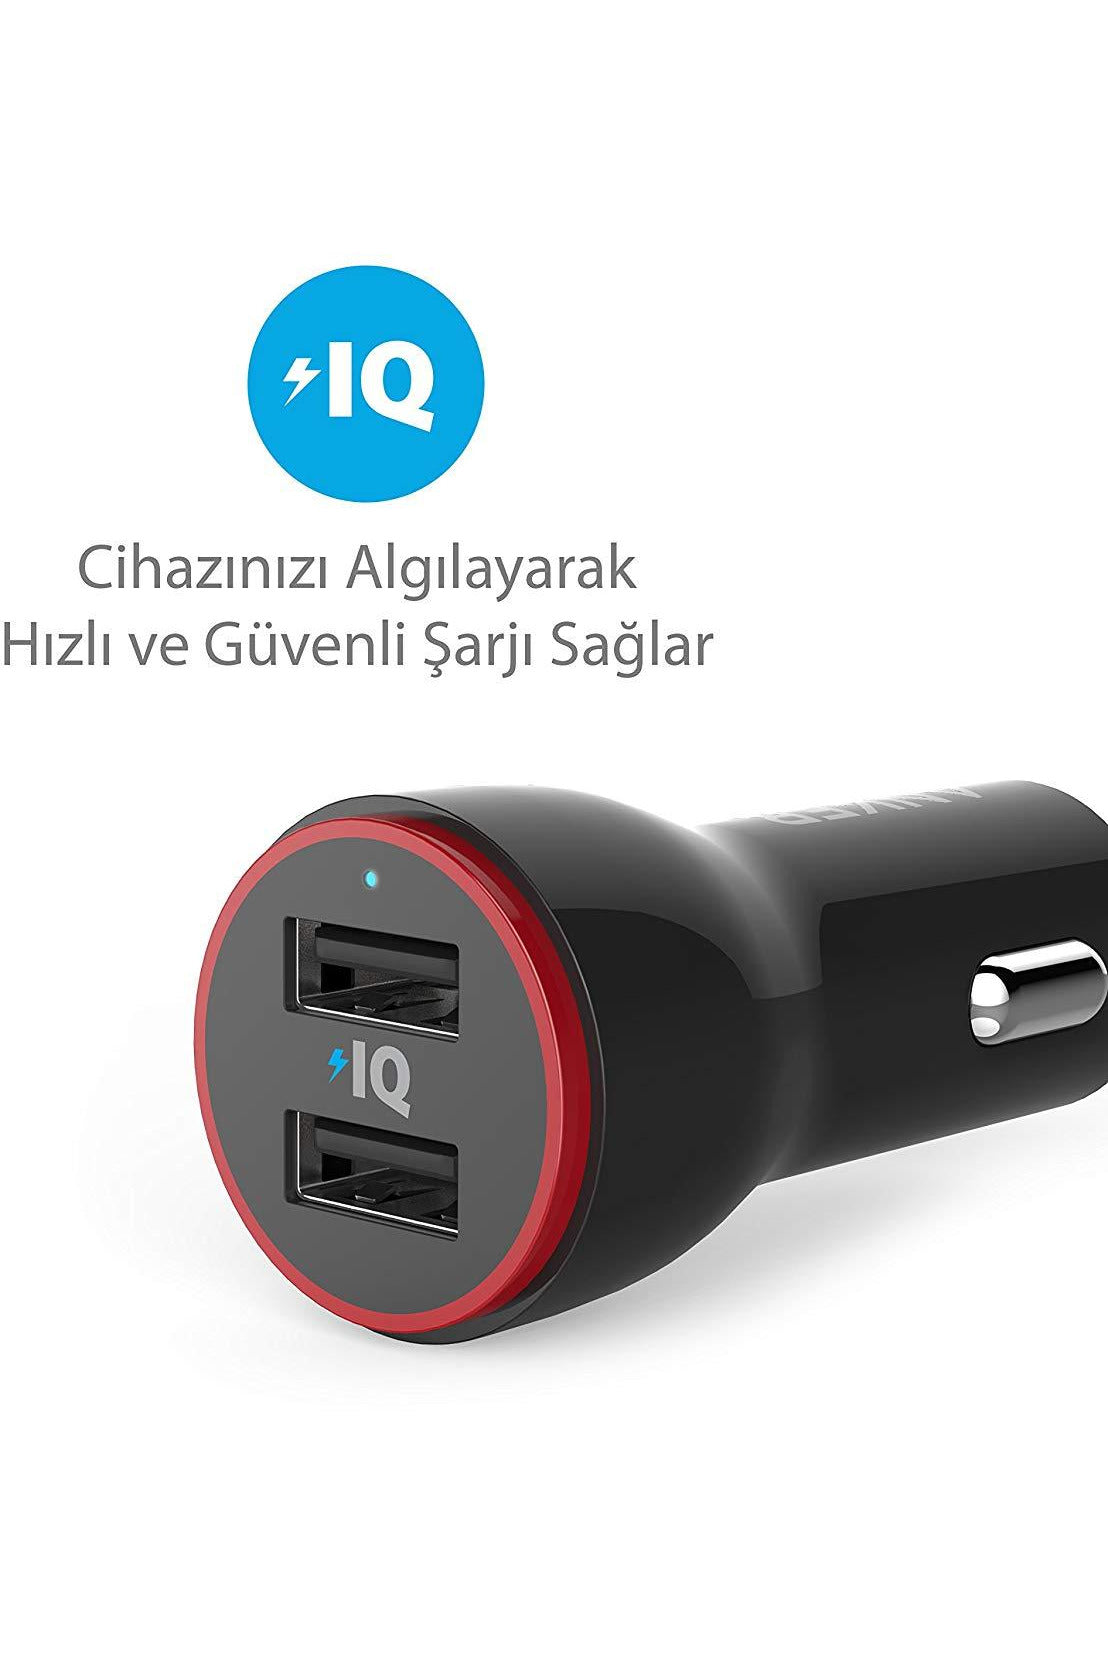 Anker Power Drive 2 -USB Car Charger Black (A2310H11) - www.emarketkw.com